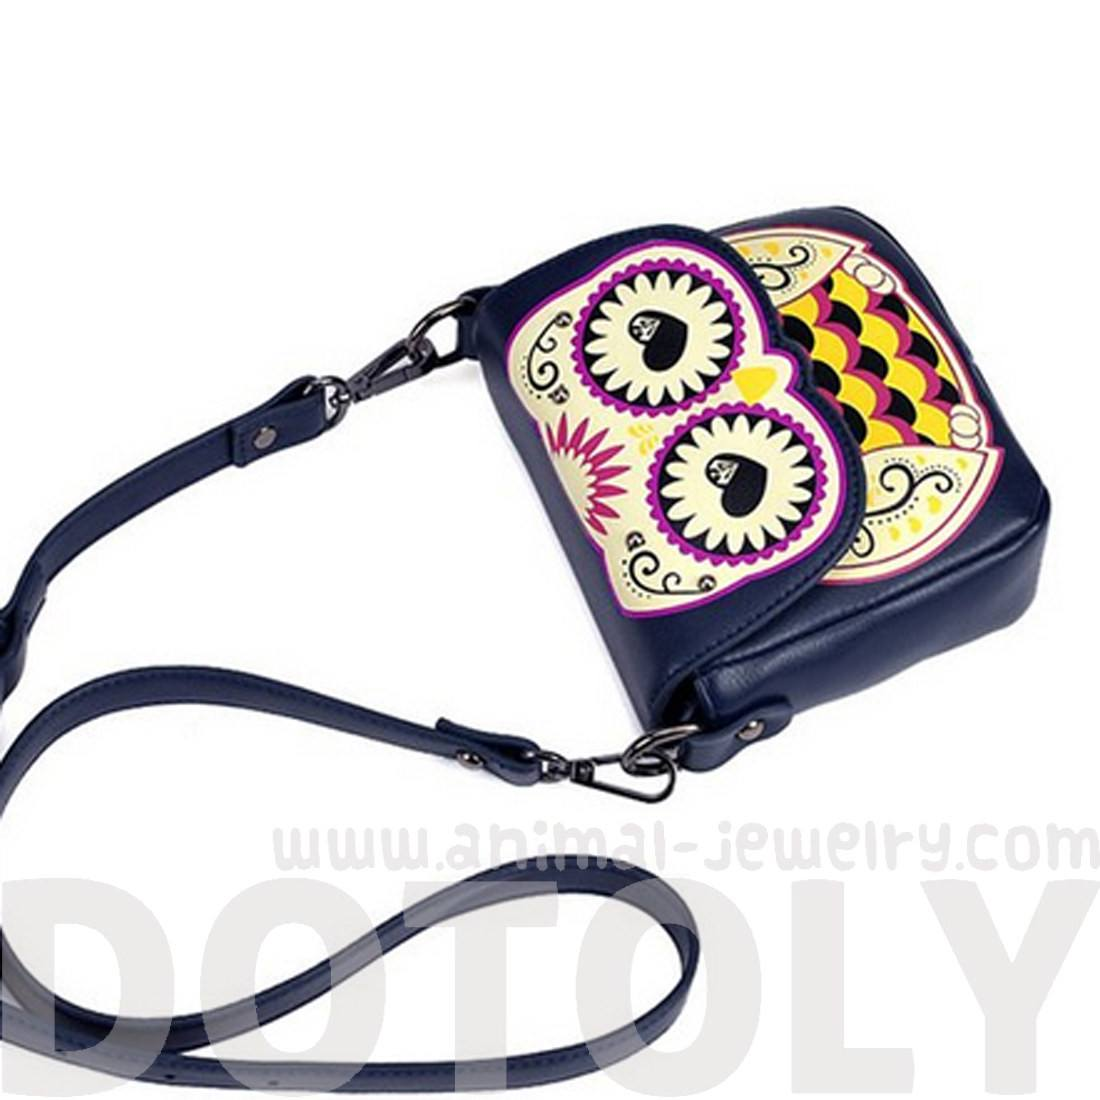 Abstract Owl Shaped Animal Themed Cross body Bag for Women in Navy